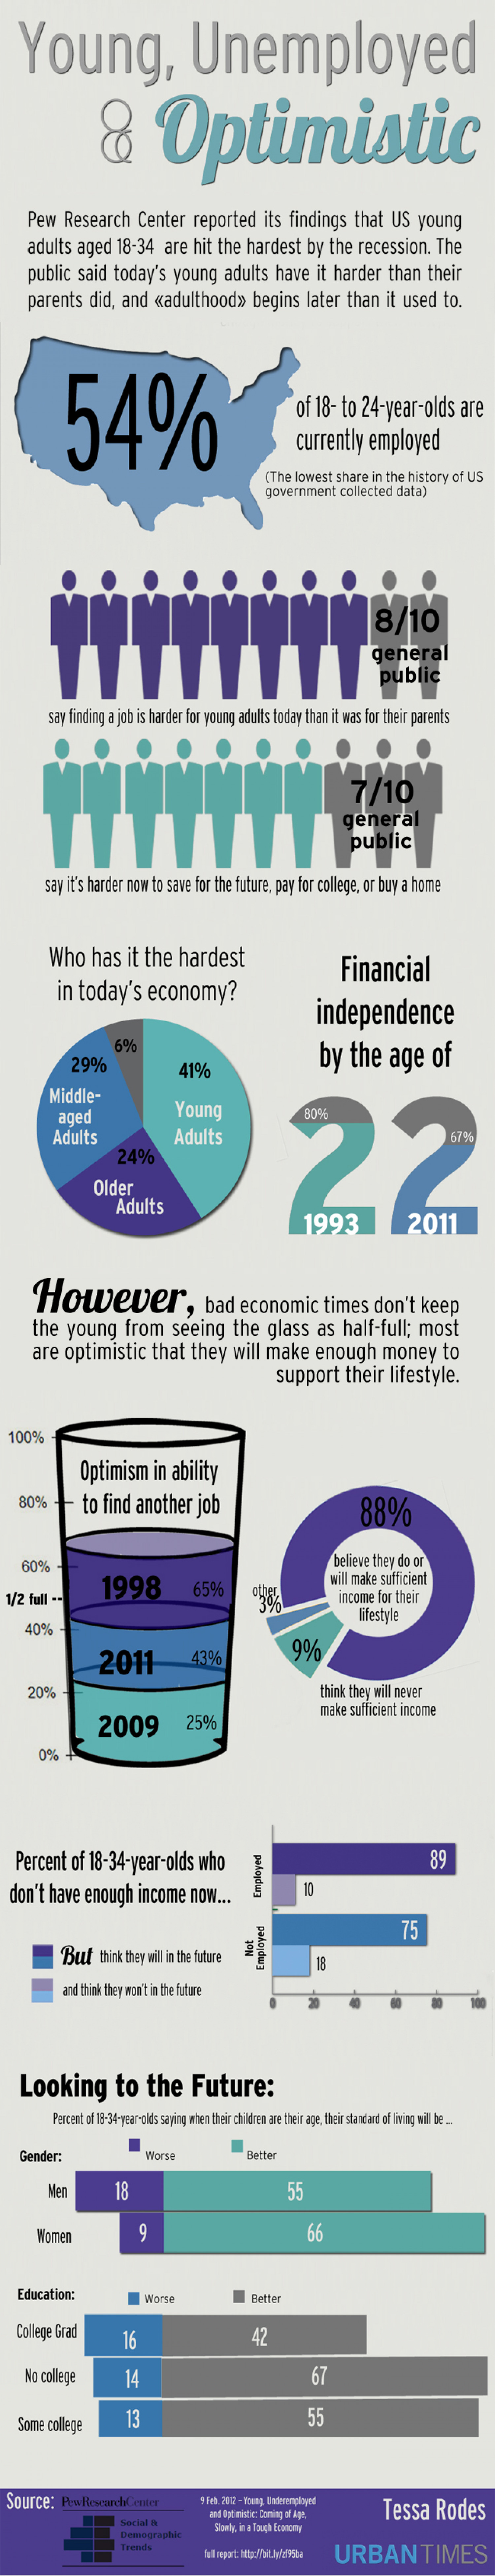 Young, Unemployed and Optimistic Infographic